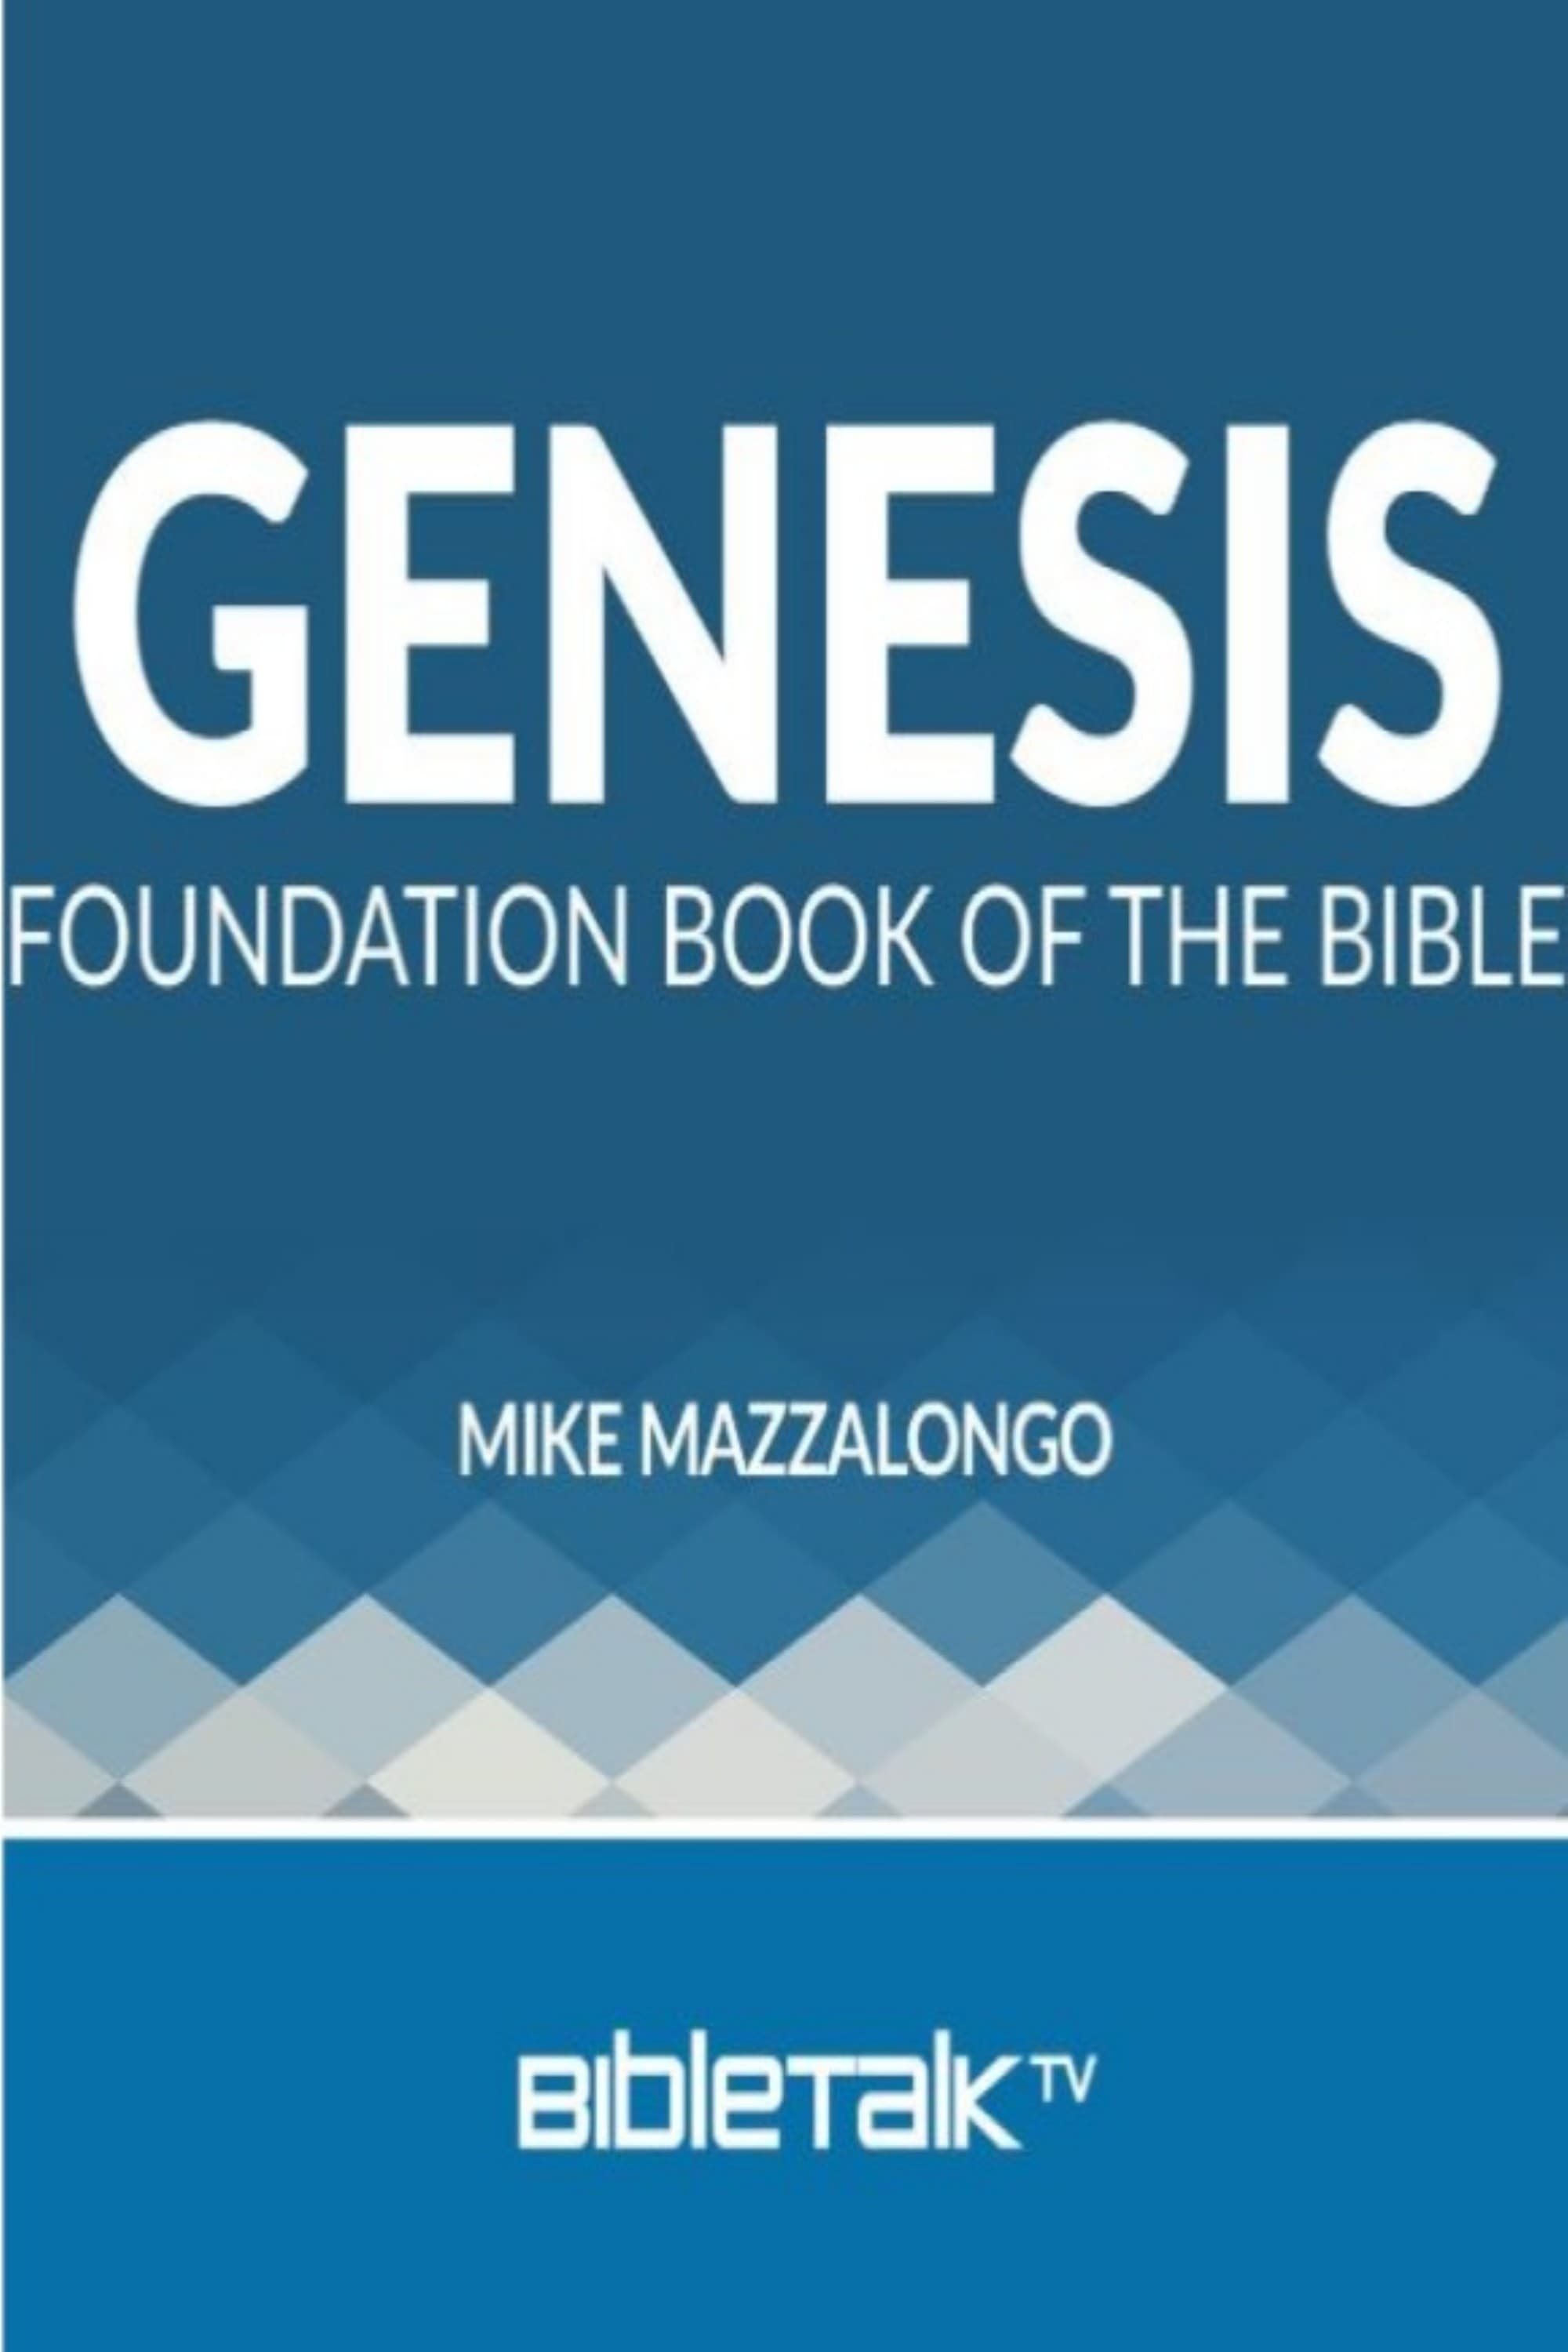 Genesis: Foundation Book of the Bible (2014)